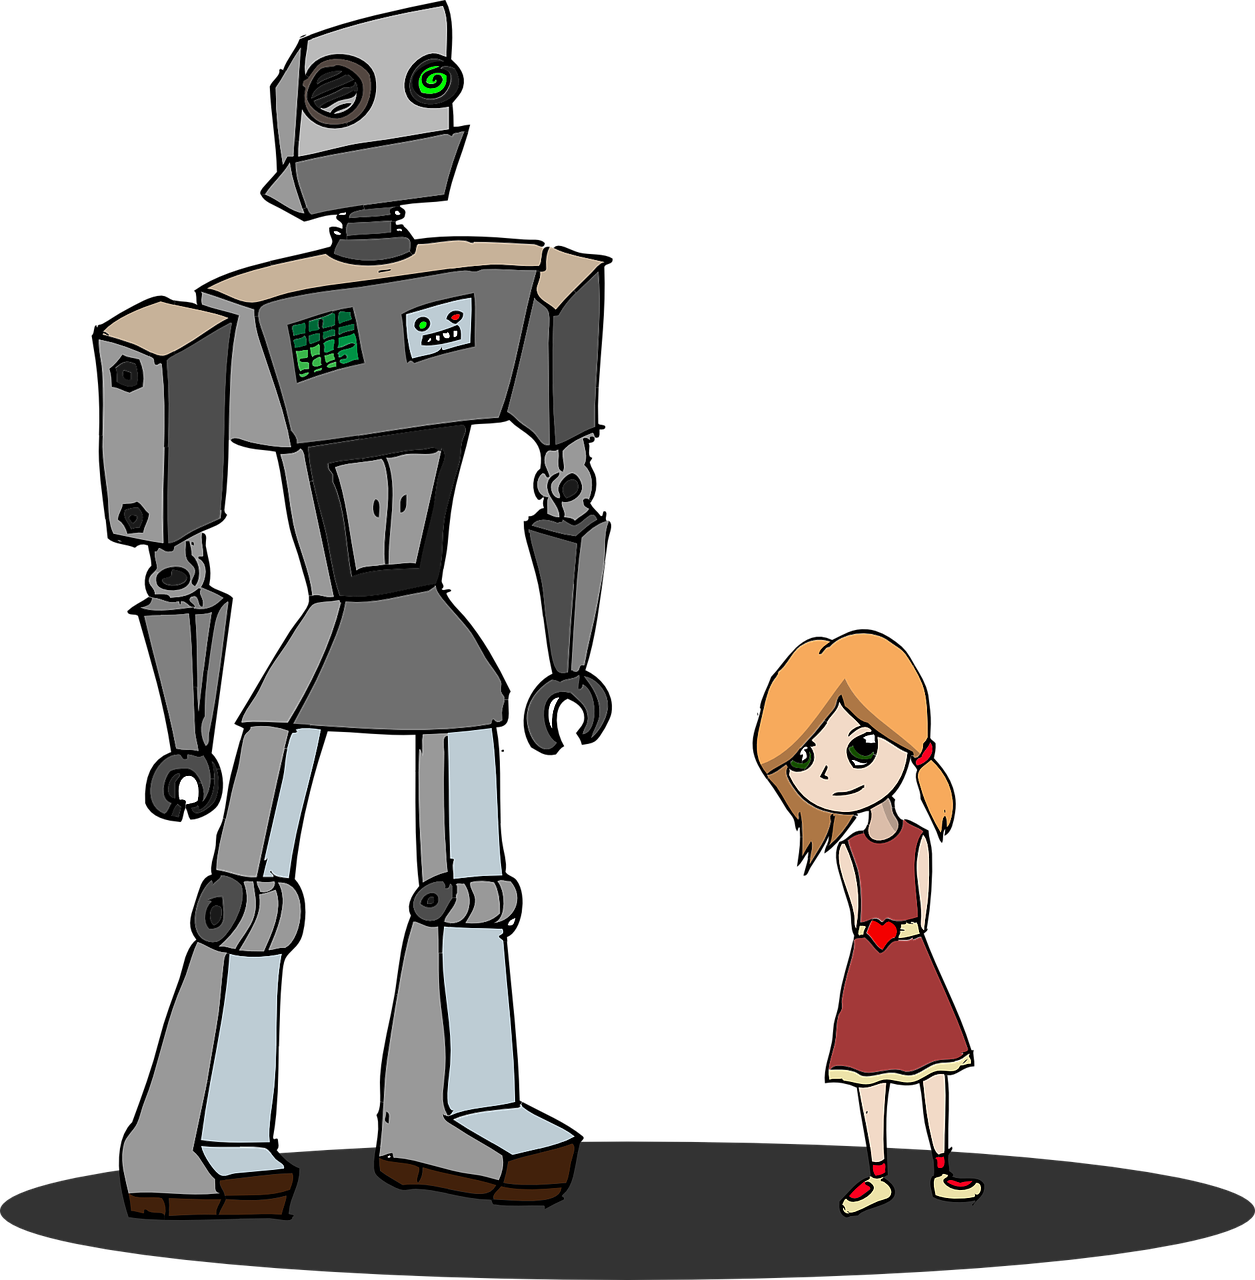 Robot_and_Girl